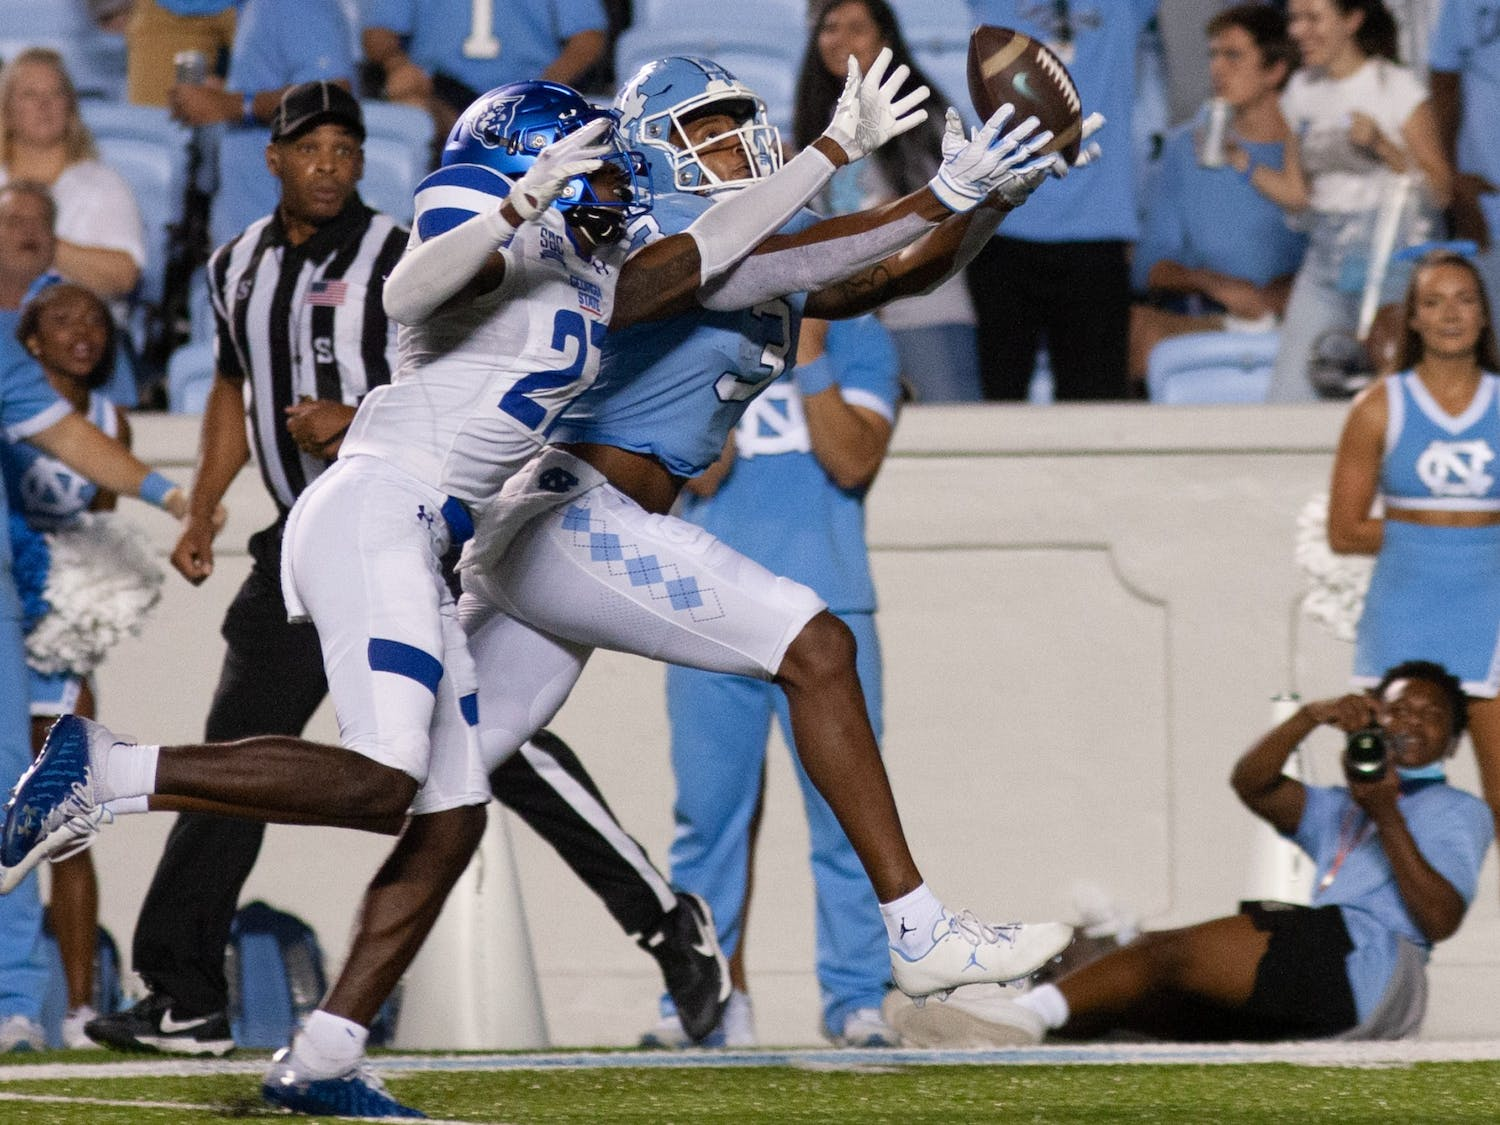 UNC senior wide receiver Antoine Green (3) scores a touchdown at the game against Georgia State on Sept. 11 at Kenan Stadium. UNC 59-17.